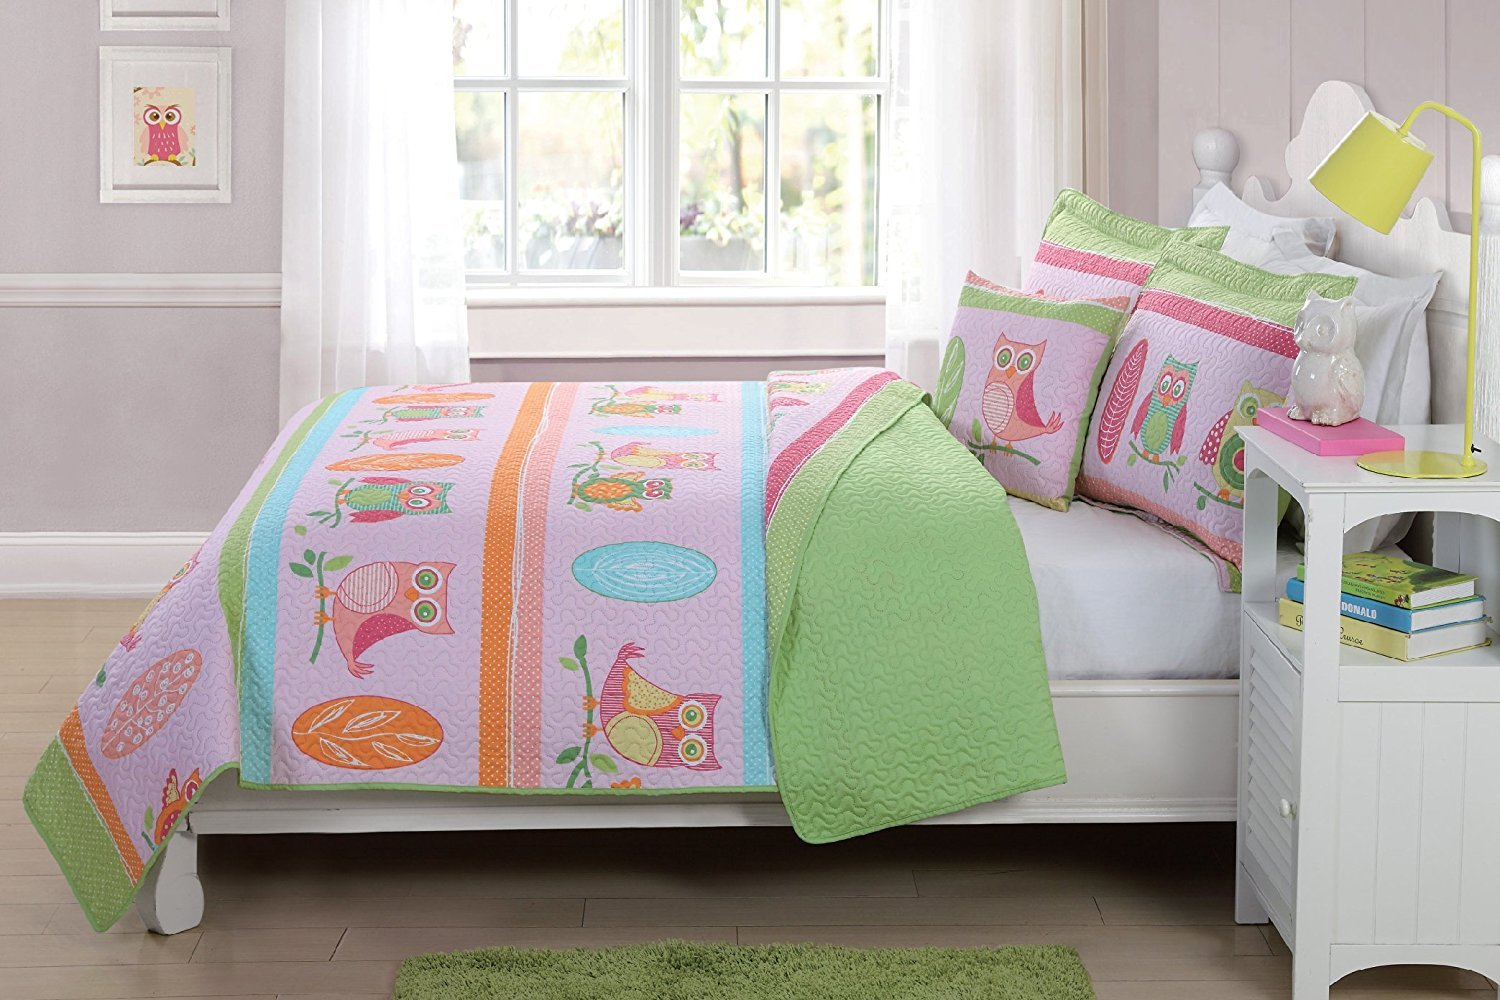 Fancy Linen Bedspread Coverlet Owl Pink Green Blue Reversible New # Hoot New (Twin)